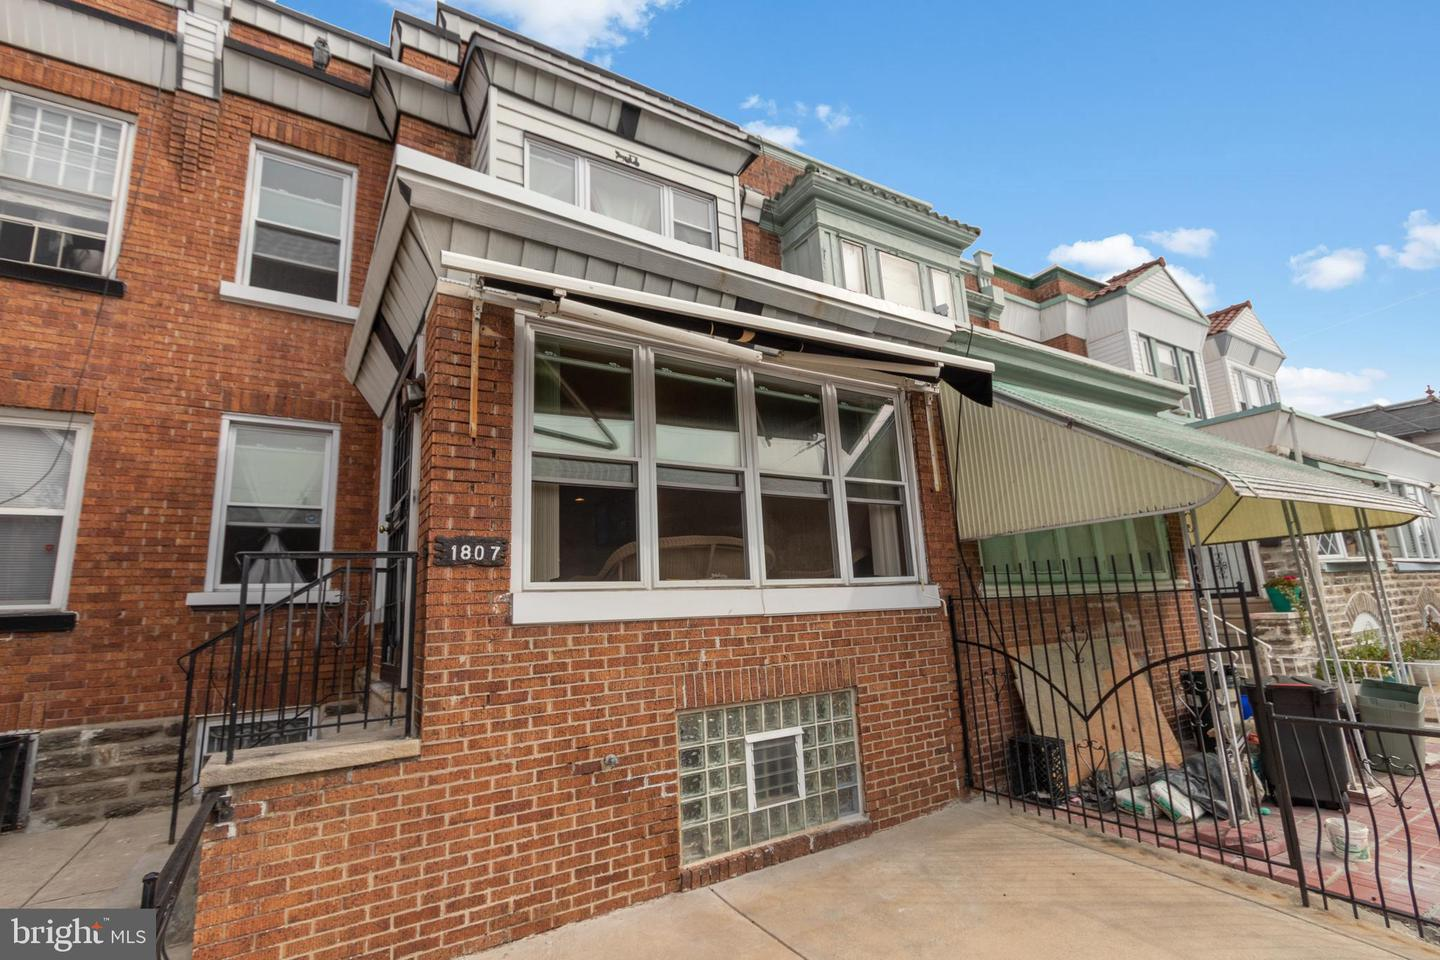 1807 68th Avenue Philadelphia, PA 19126